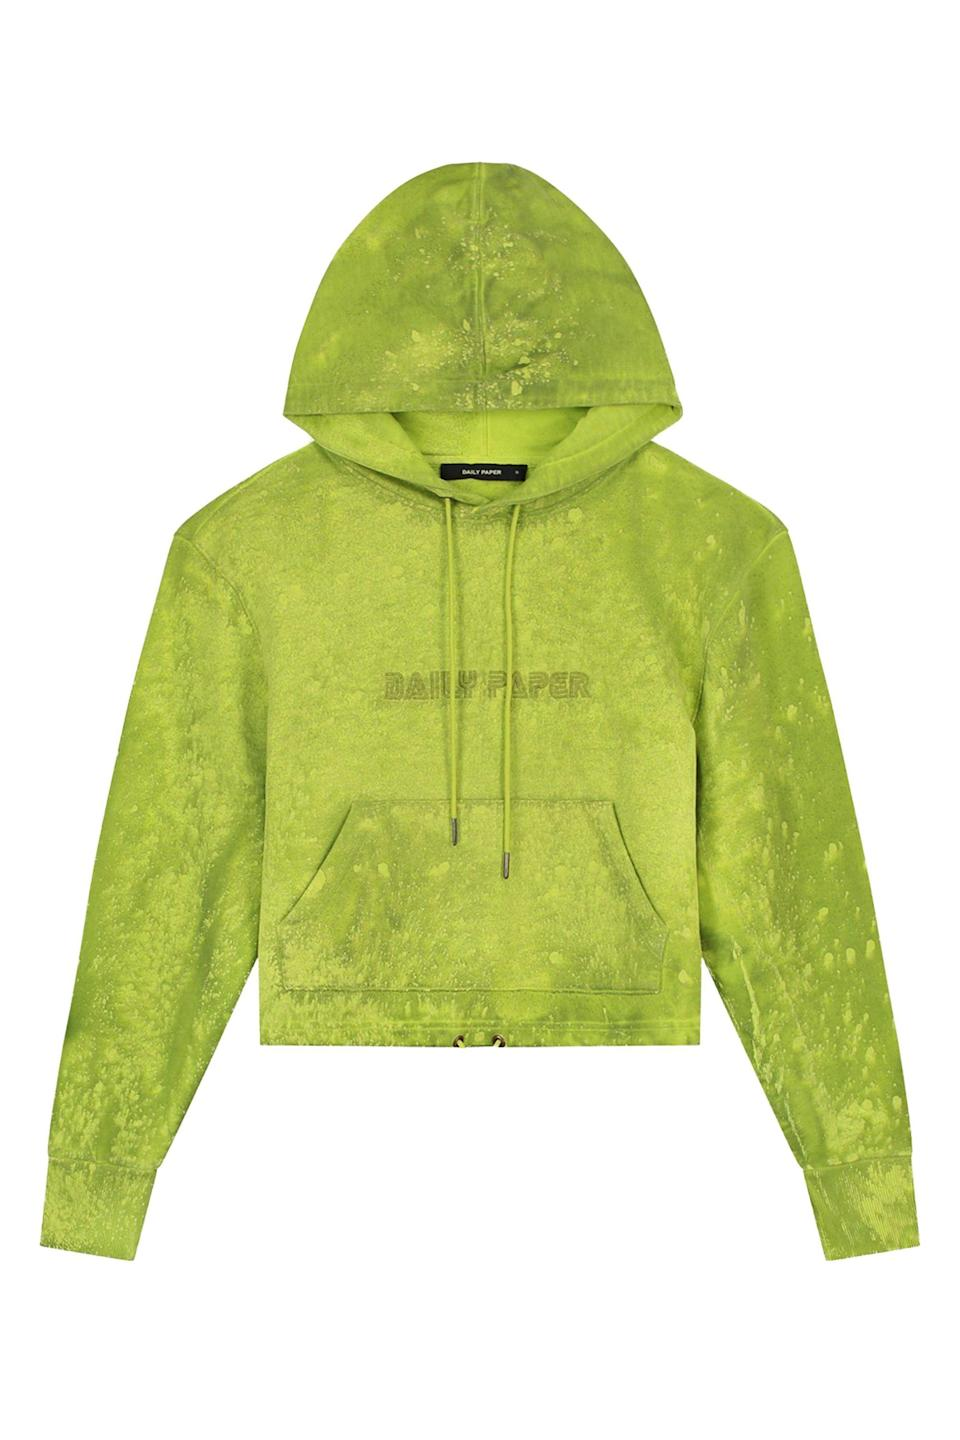 "<p><strong>Daily Paper</strong></p><p>dailypaperclothing.com</p><p><strong>179.00</strong></p><p><a href=""https://www.dailypaperclothing.com/collections/women-all/products/acid-lime-jowa-hoody?variant=34681833160838"" rel=""nofollow noopener"" target=""_blank"" data-ylk=""slk:Shop Now"" class=""link rapid-noclick-resp"">Shop Now</a></p><p>The perfect hoodie does not exi-</p>"